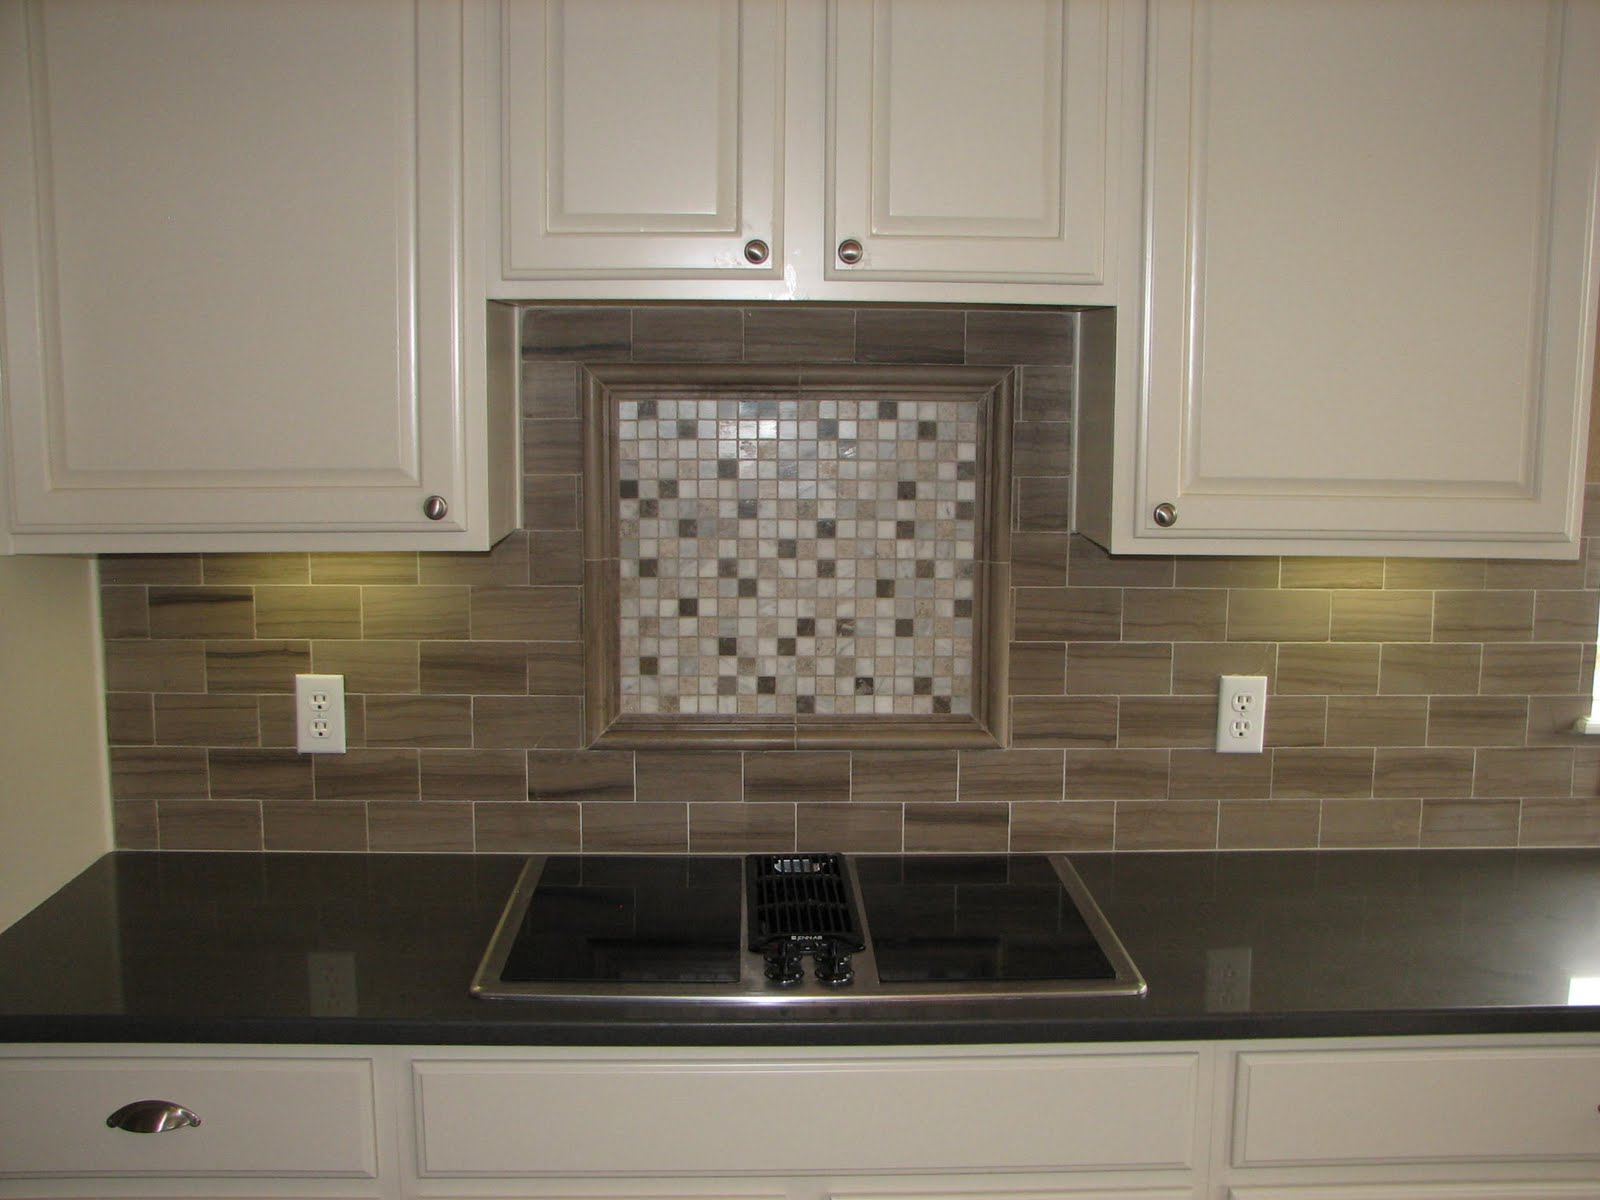 Integrity installations a division of front for Kitchen designs with glass tile backsplash